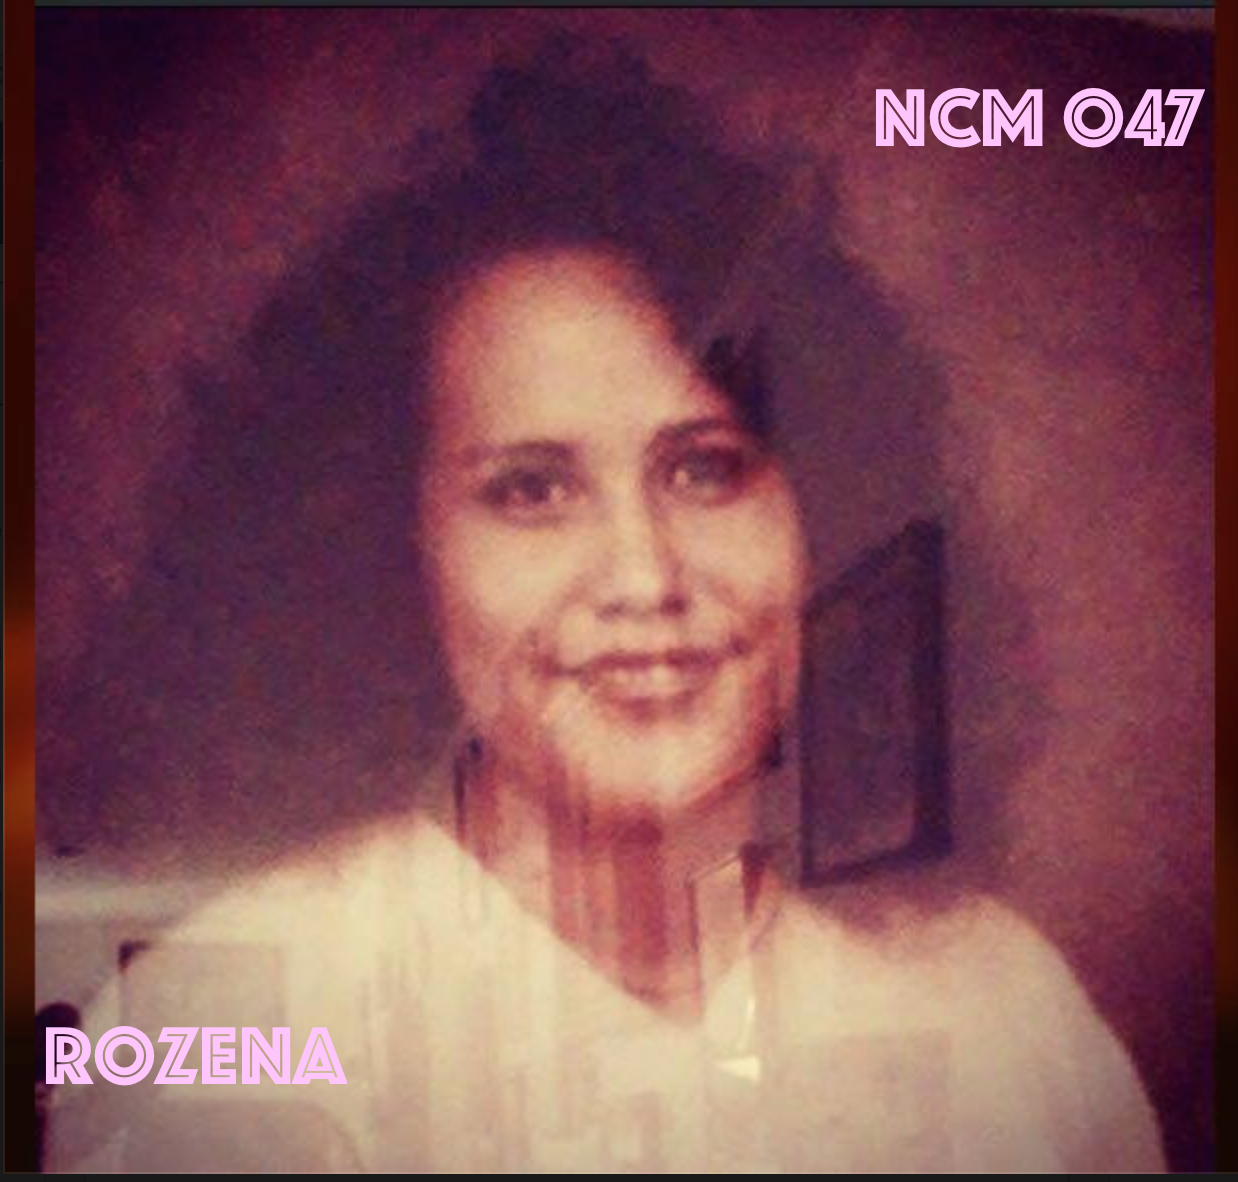 night club musical act 047: Rozena